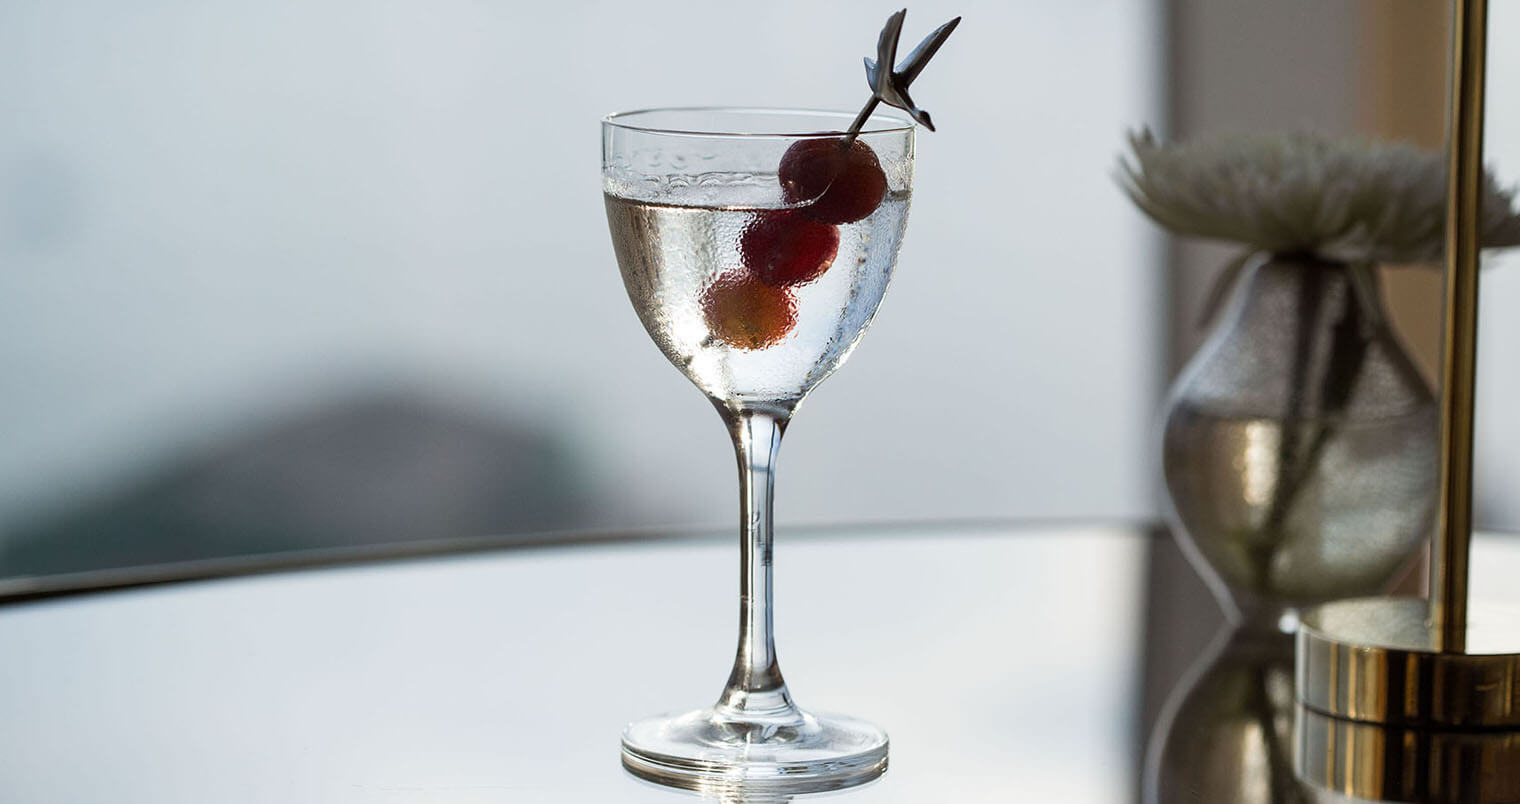 Celebrate National Martini Day with Grey Goose - June 19th, 2015